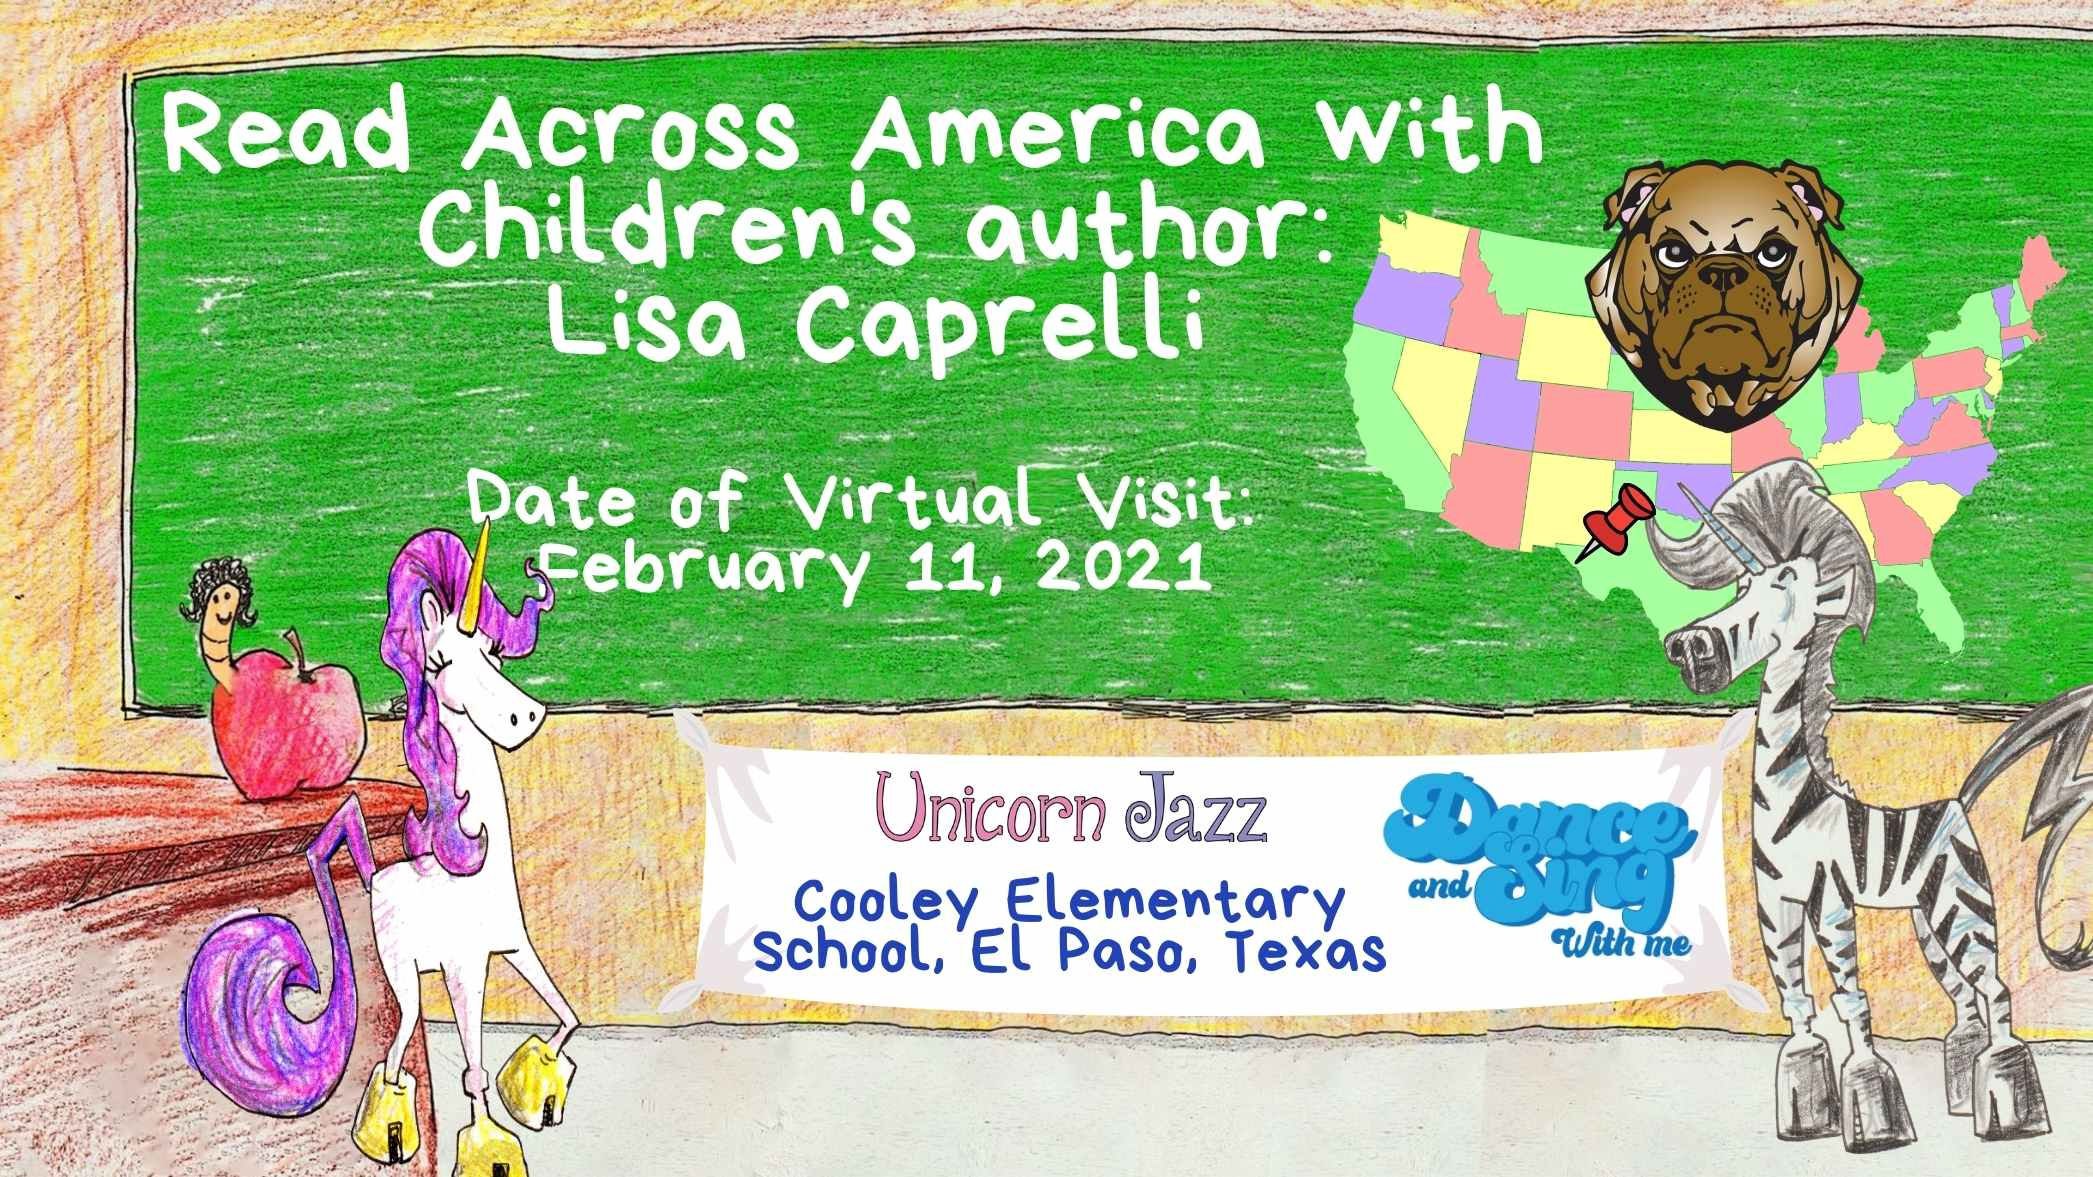 Cooley elementary school visit by author